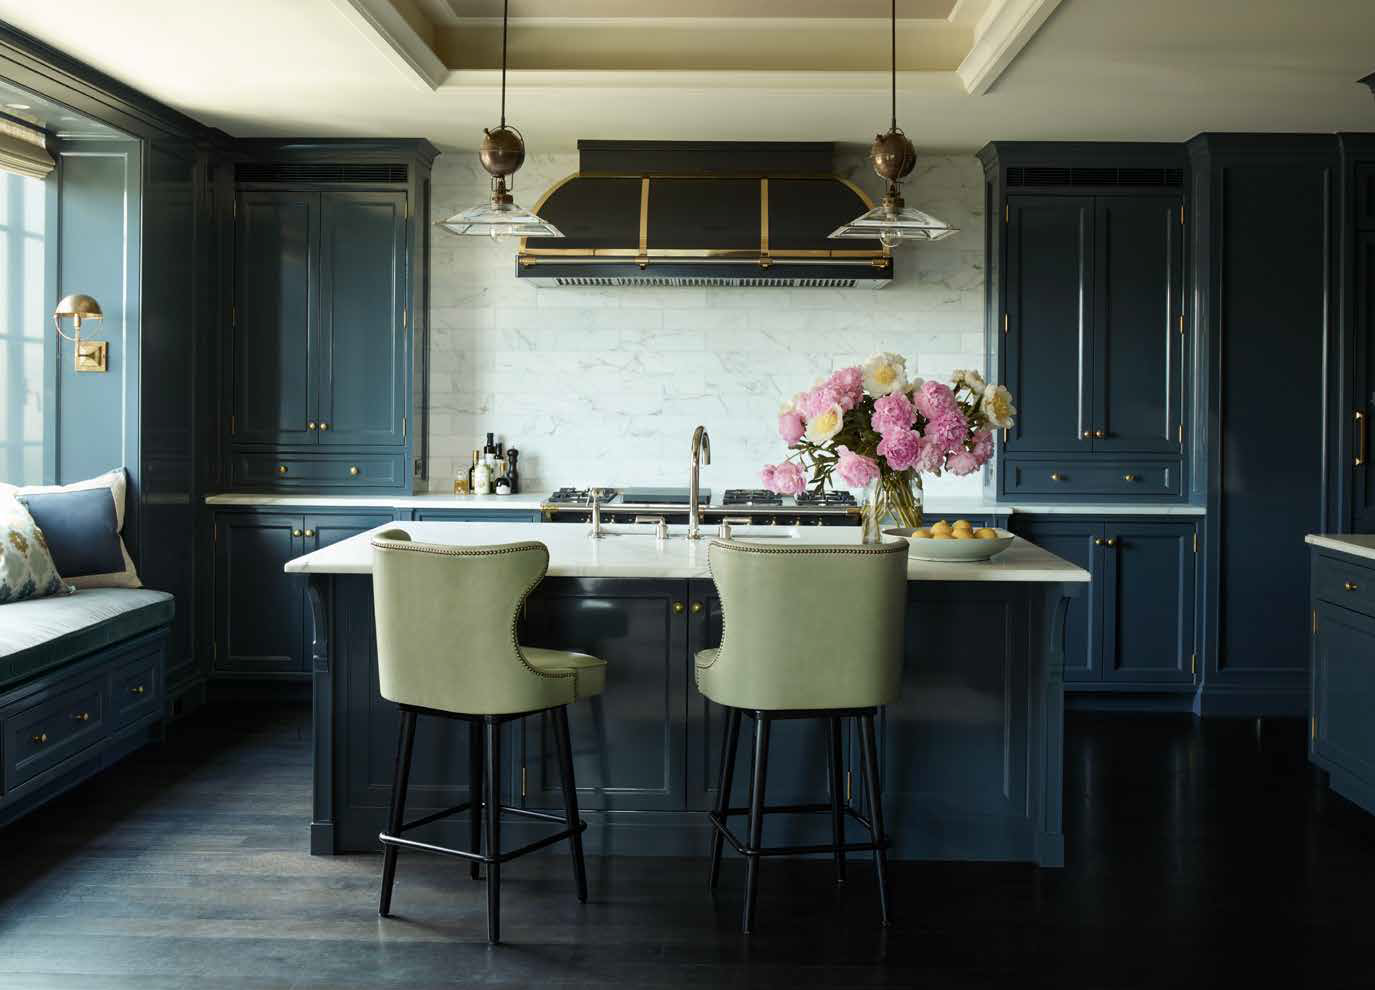 p. 22-23 The austere elegance of this kitchen—its simple, symmetrical architectural elements, careful alignment of marble countertops, and rich blue lacquerwork— is softened by the curvaceous profile of the barstools and inviting window seat. Photo Credit: Simon Upton